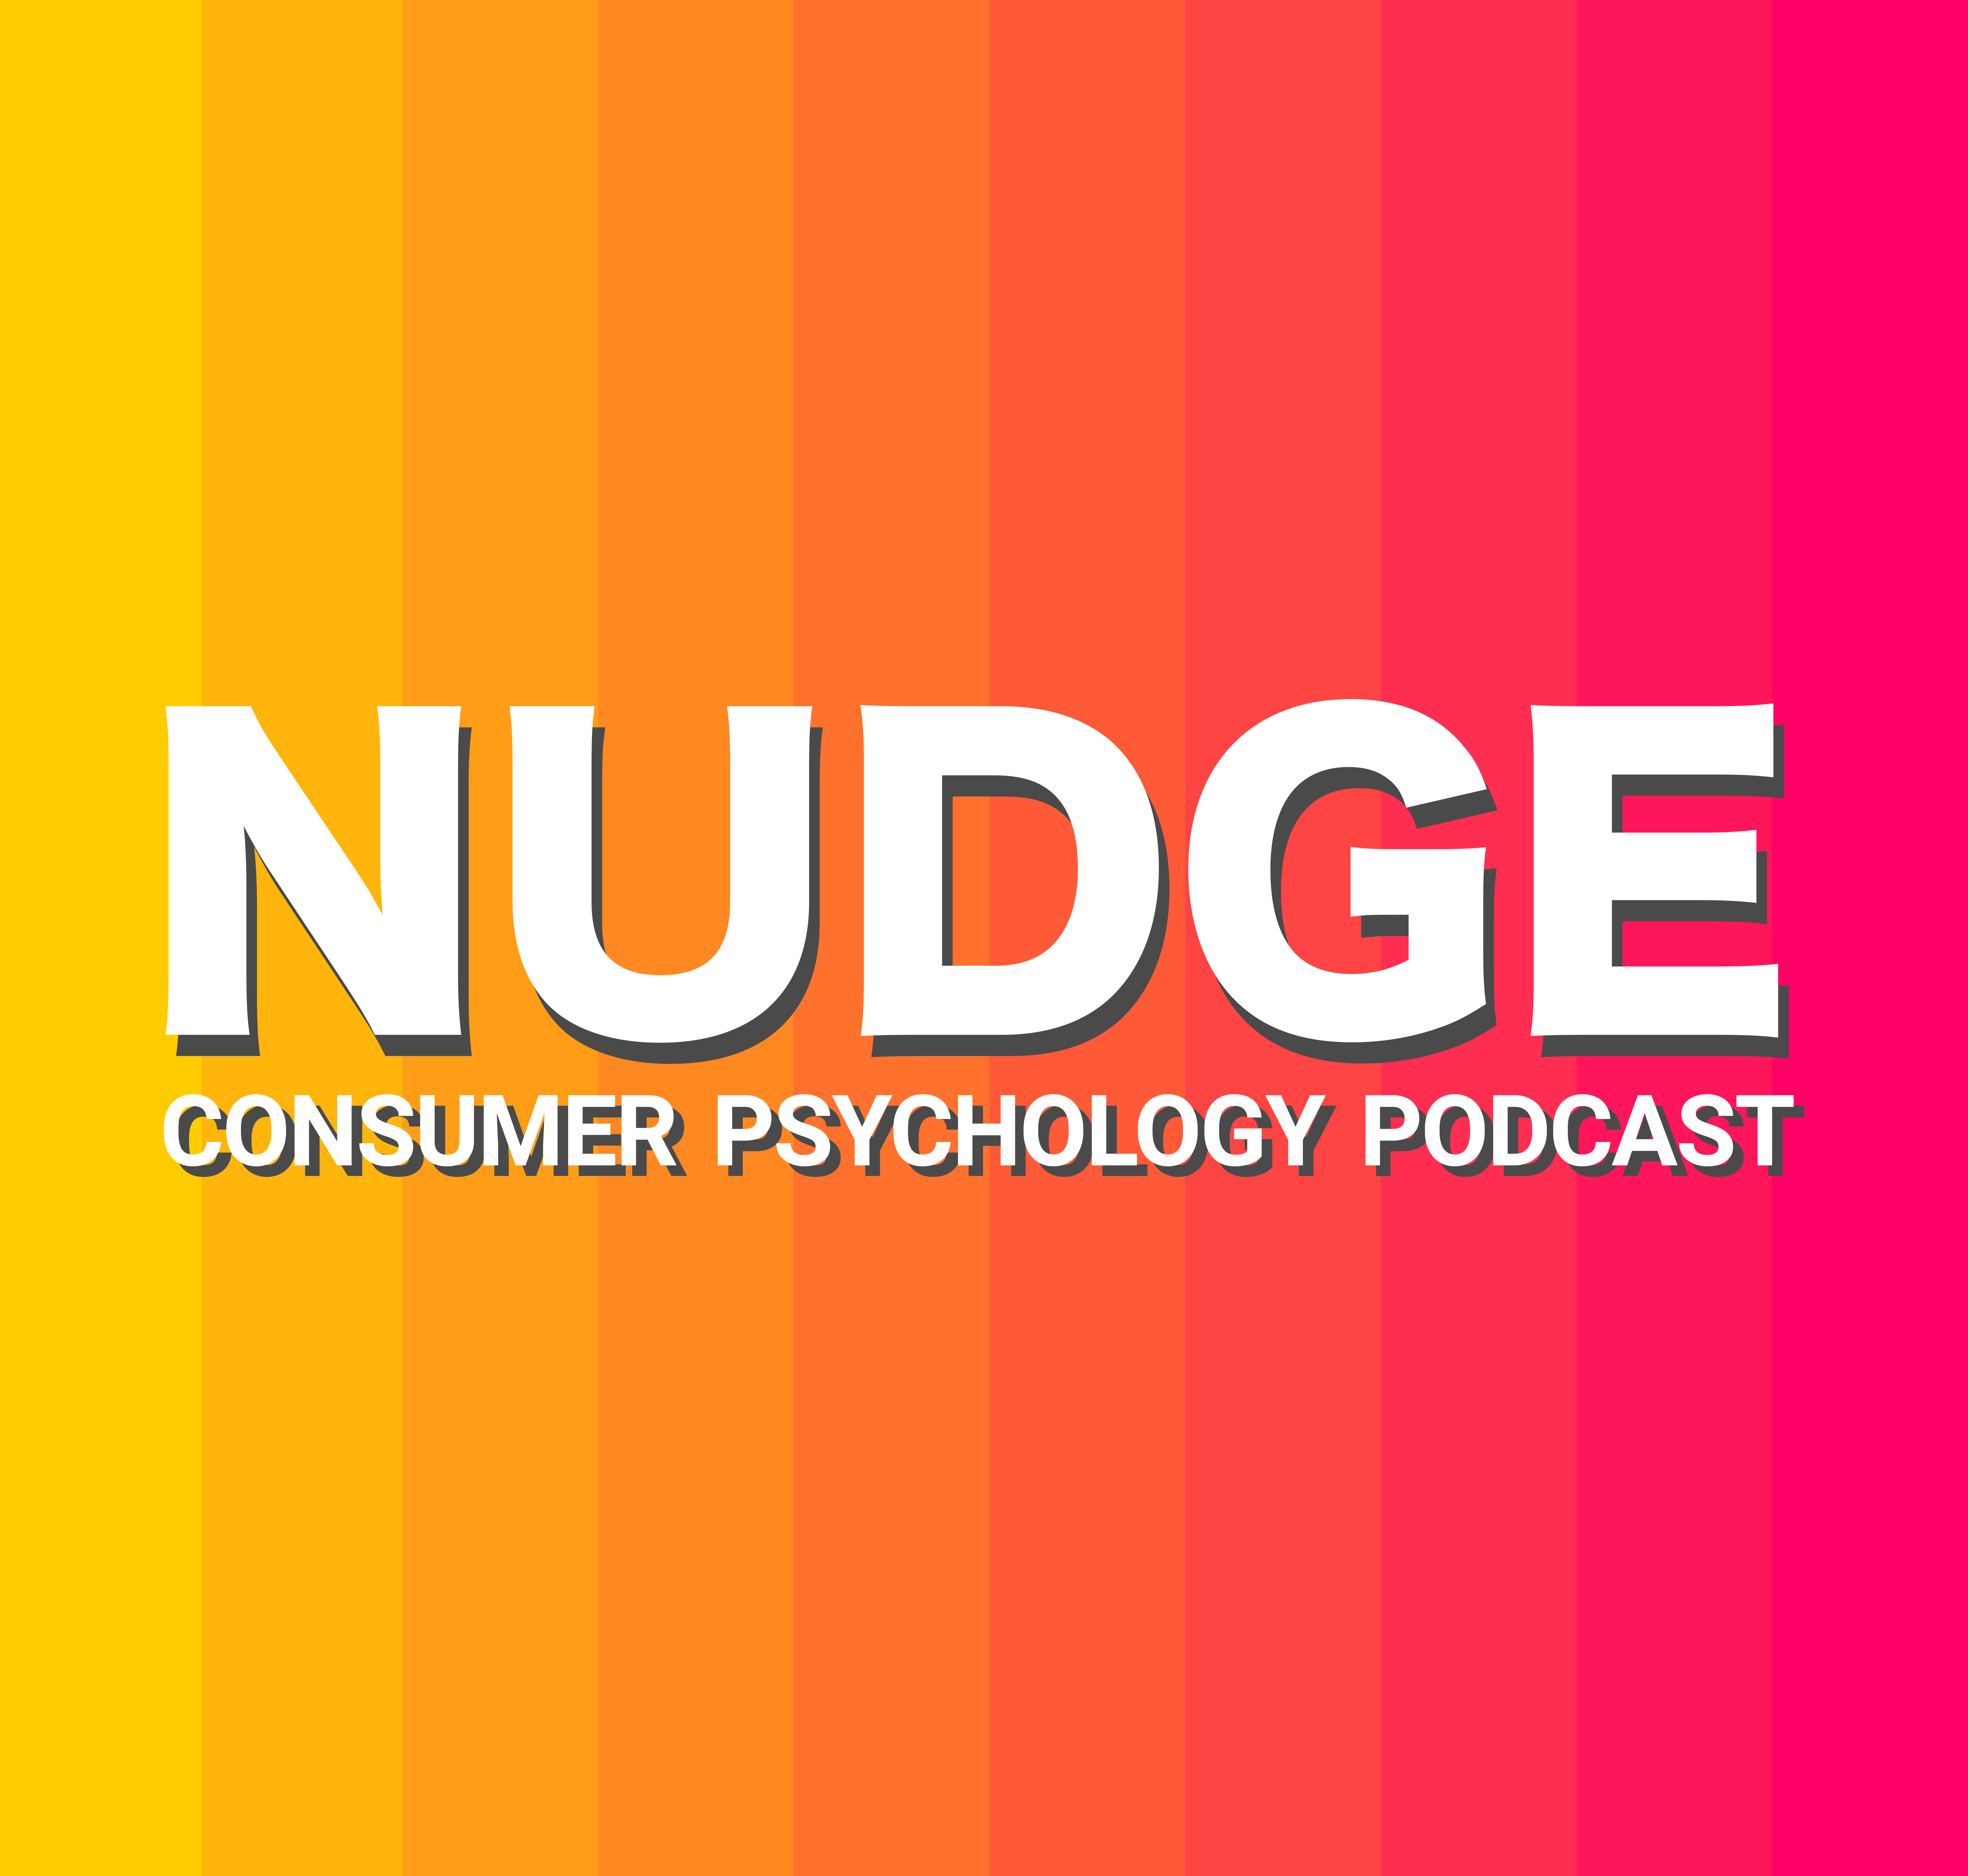 Listen to Nudge and learn about the science behind marketing